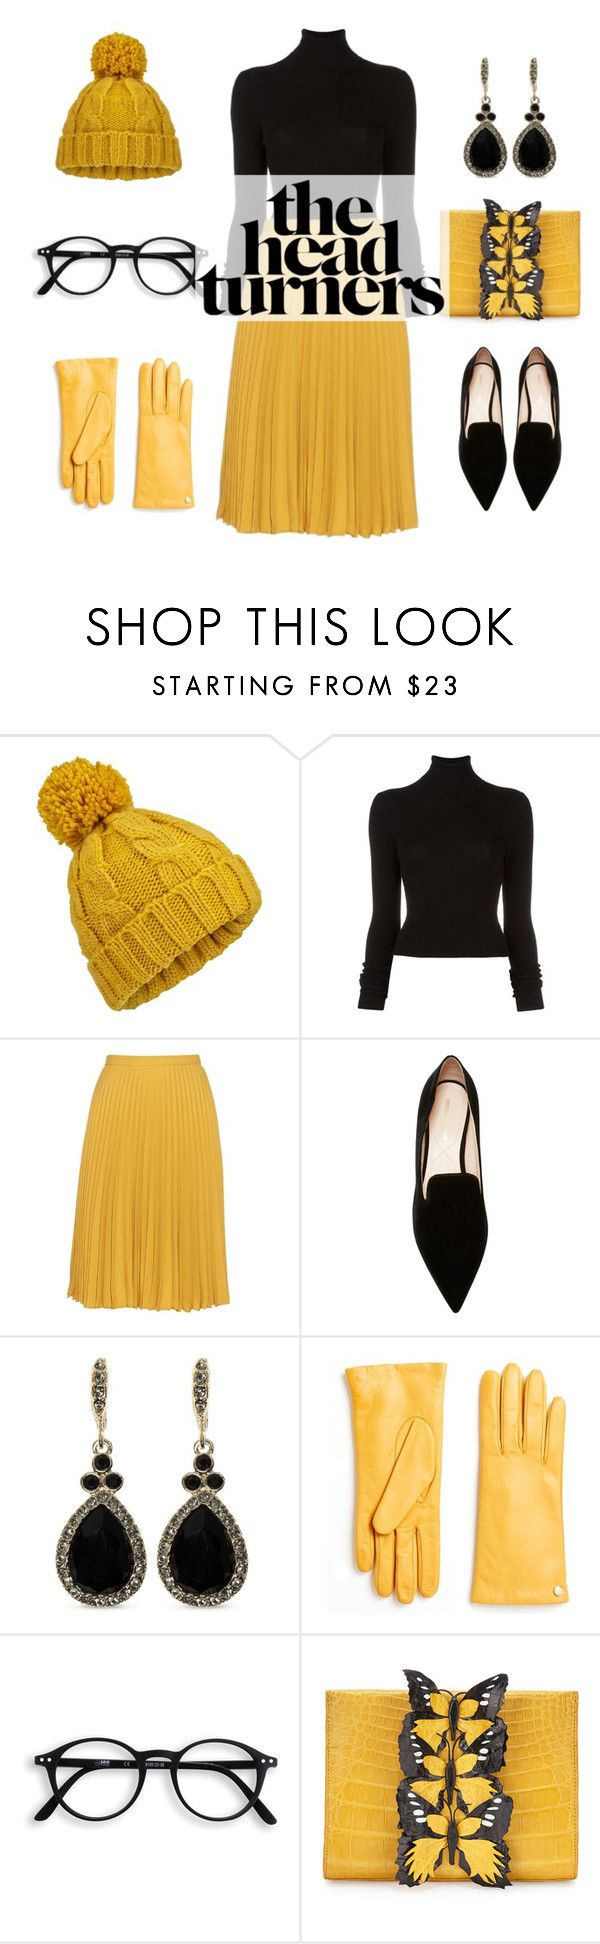 """The Girl in the Yellow Dress"" by julietteaimee ❤ liked on Polyvore featuring Miss Selfridge, BLK DNM, Weekend Max Mara, Nicholas Kirkwood, Givenchy, Furla and Nancy Gonzalez"